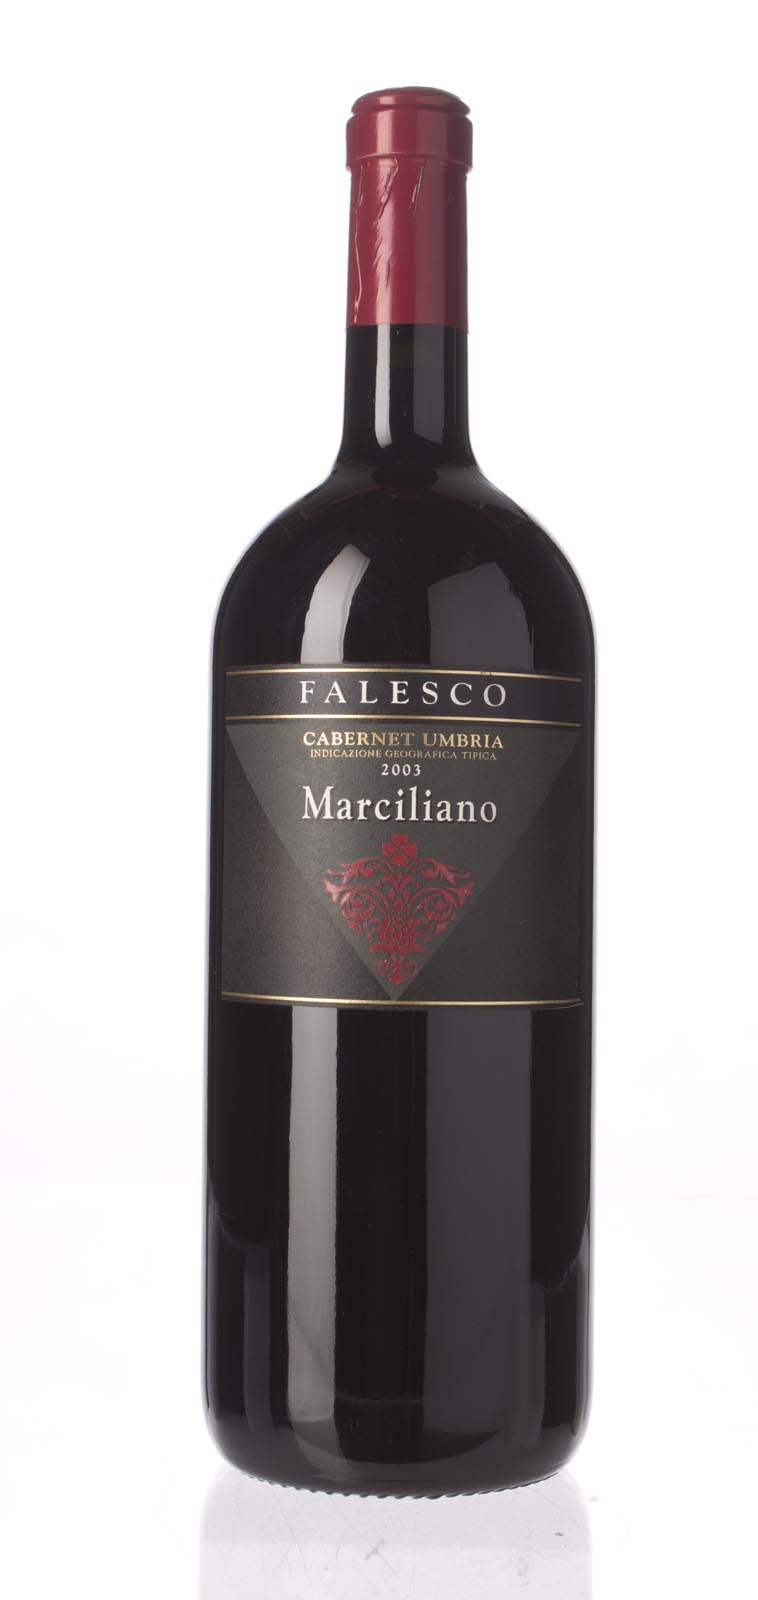 Falesco Marciliano 2003, 1.5L (CT89.8) from The BPW - Merchants of rare and fine wines.